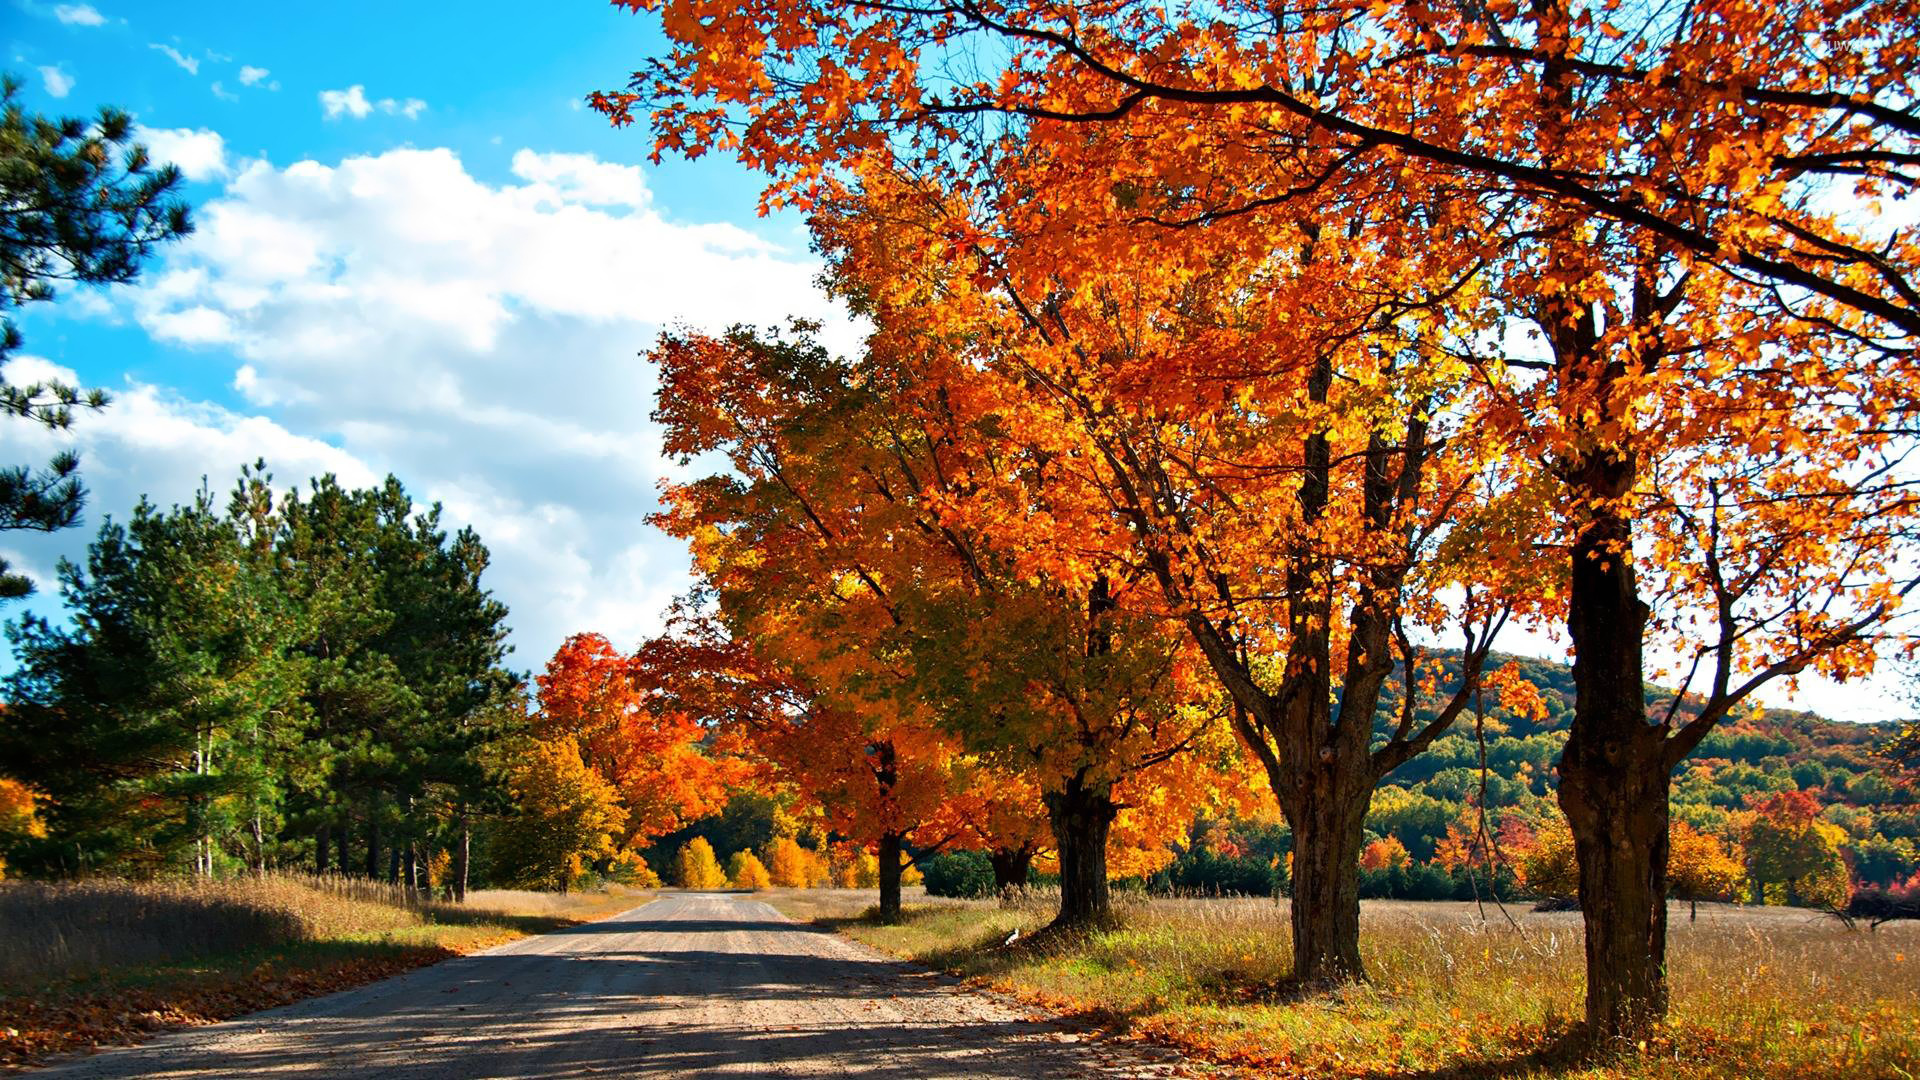 Country road wallpaper - Nature